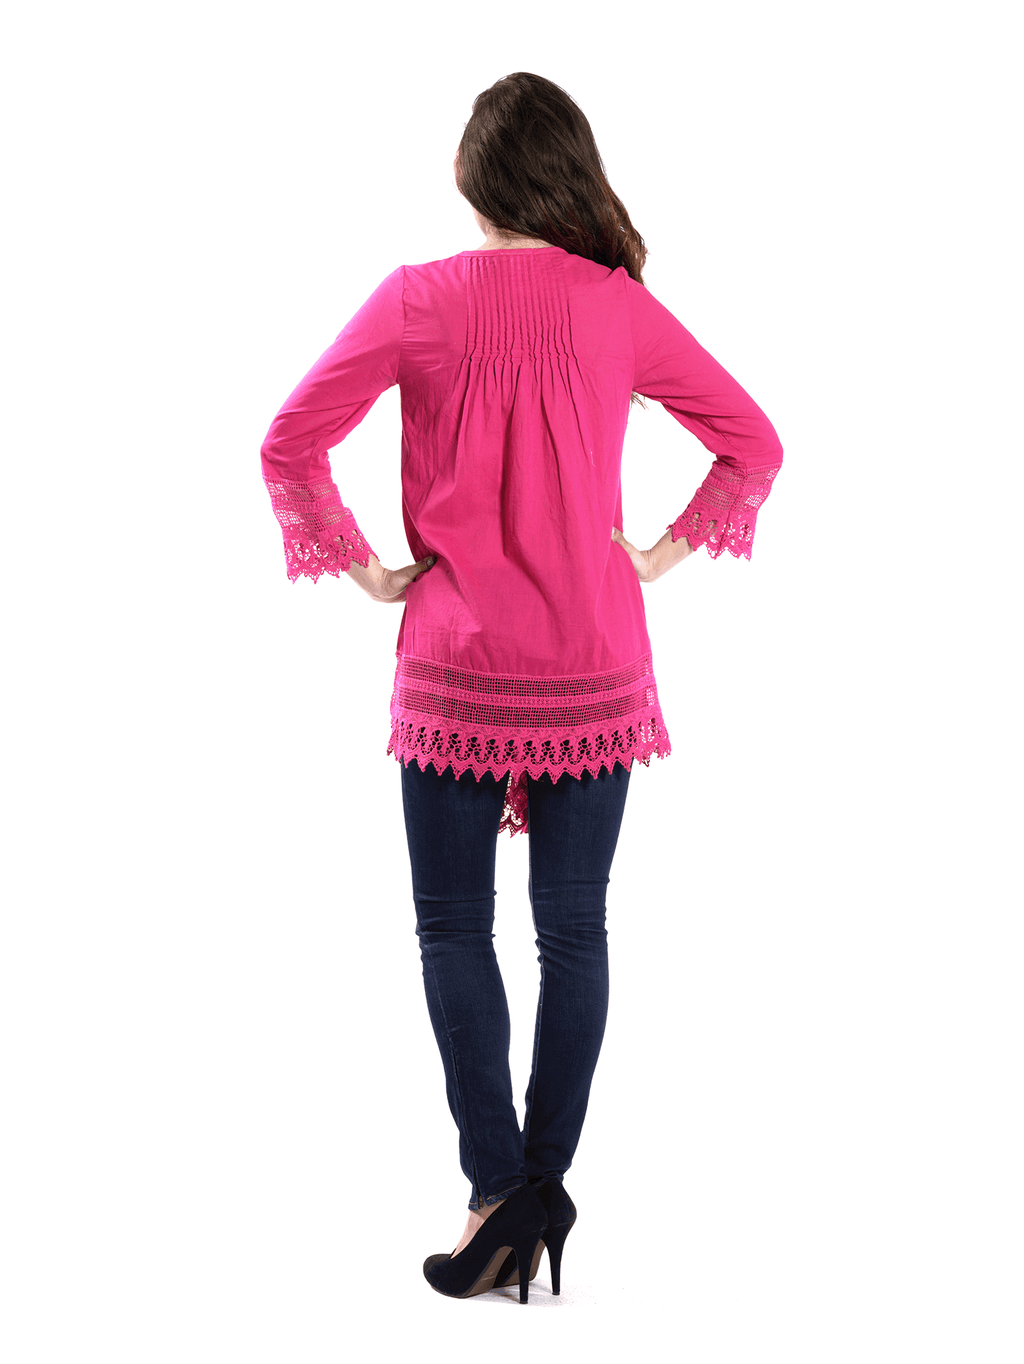 Pink top with crochet detail 2